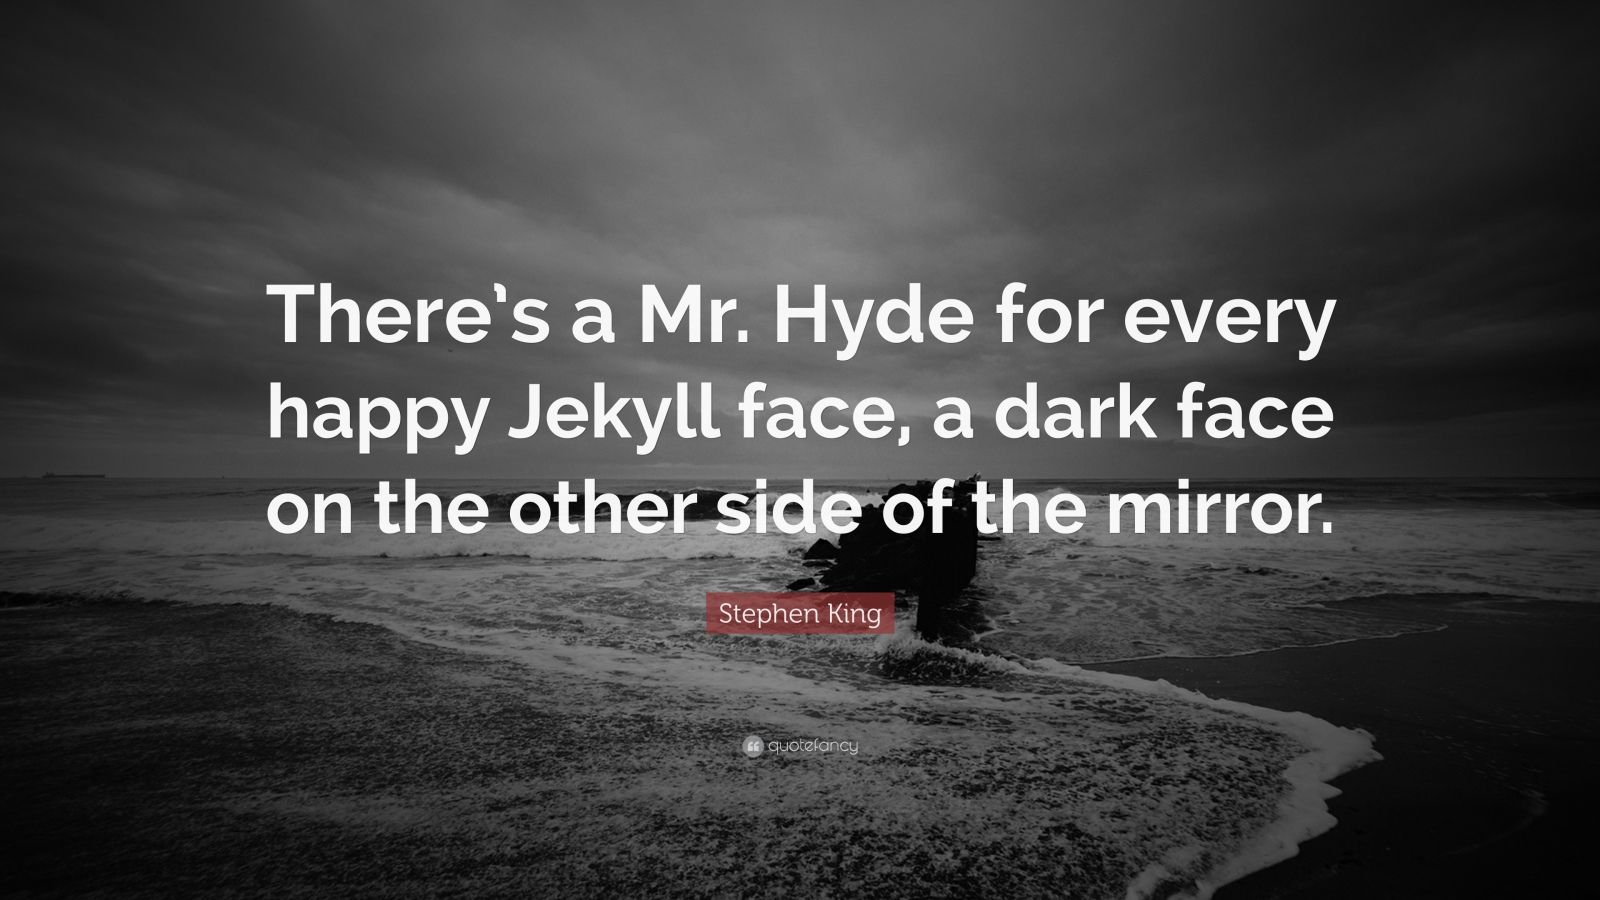 """Stephen King Quote: """"There's a Mr. Hyde for every happy Jekyll face, a dark face on the other side of the mirror."""""""